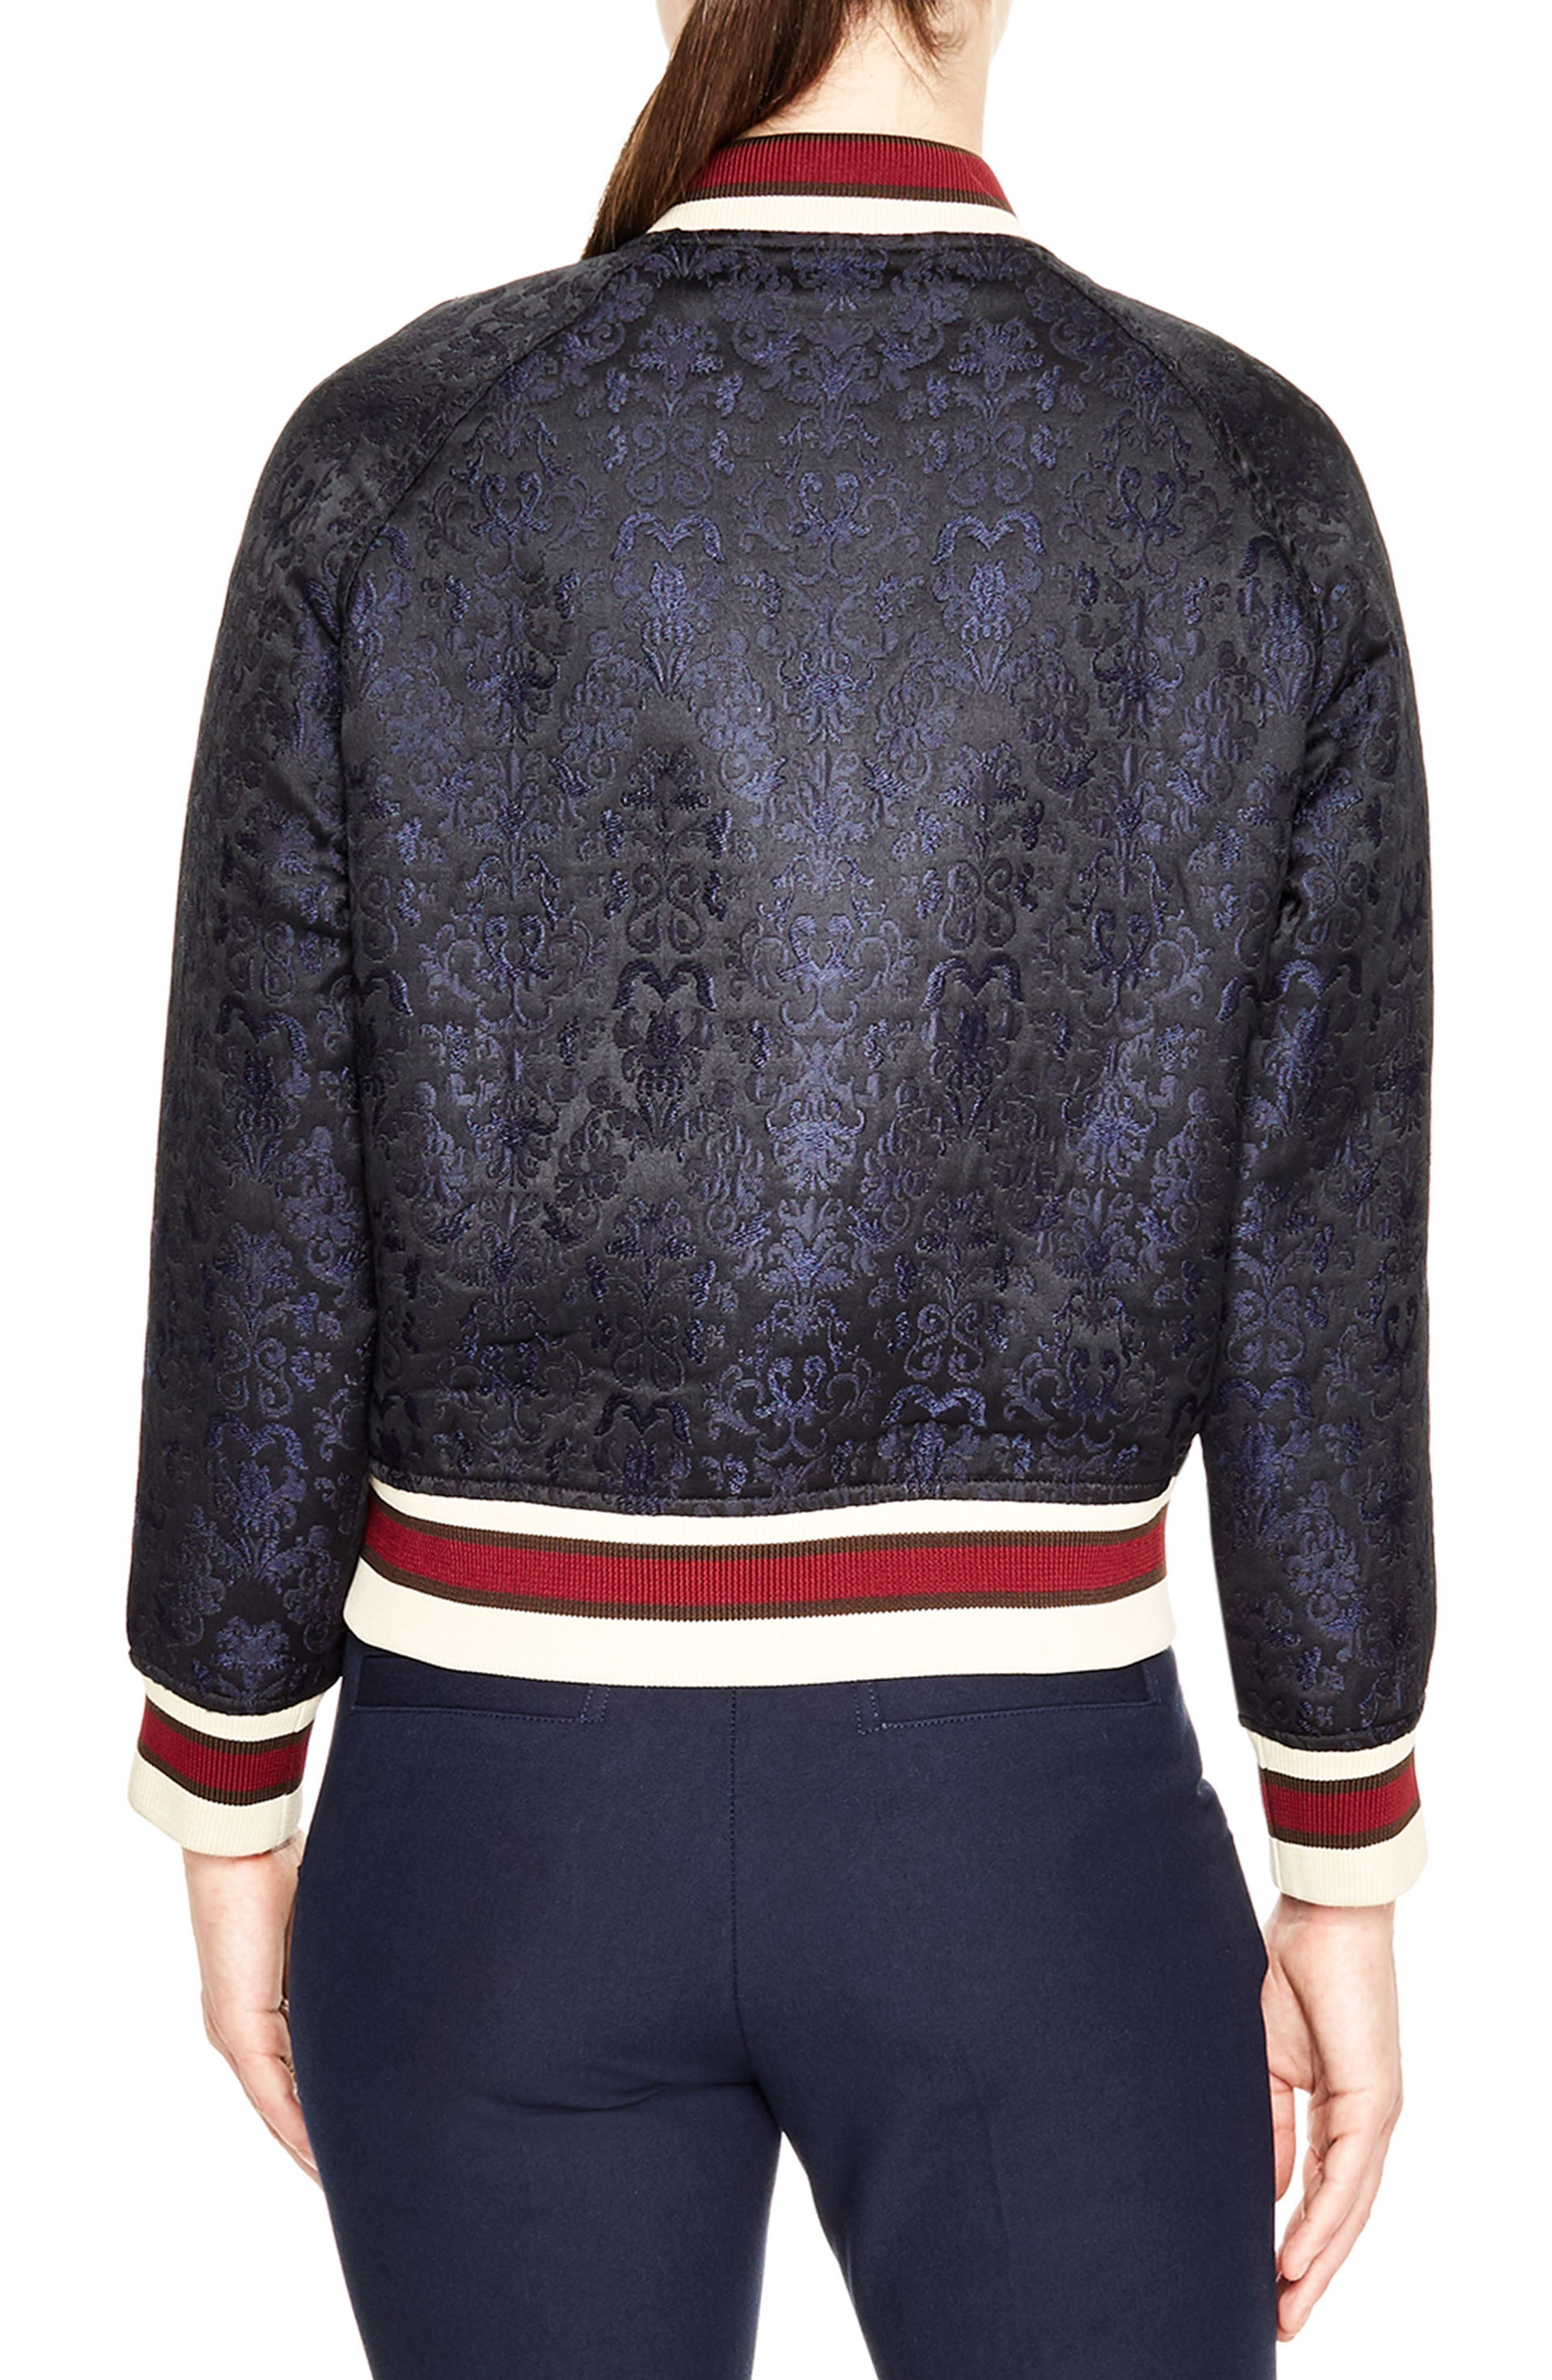 Jacquard Bomber Jacket,                             Alternate thumbnail 2, color,                             001